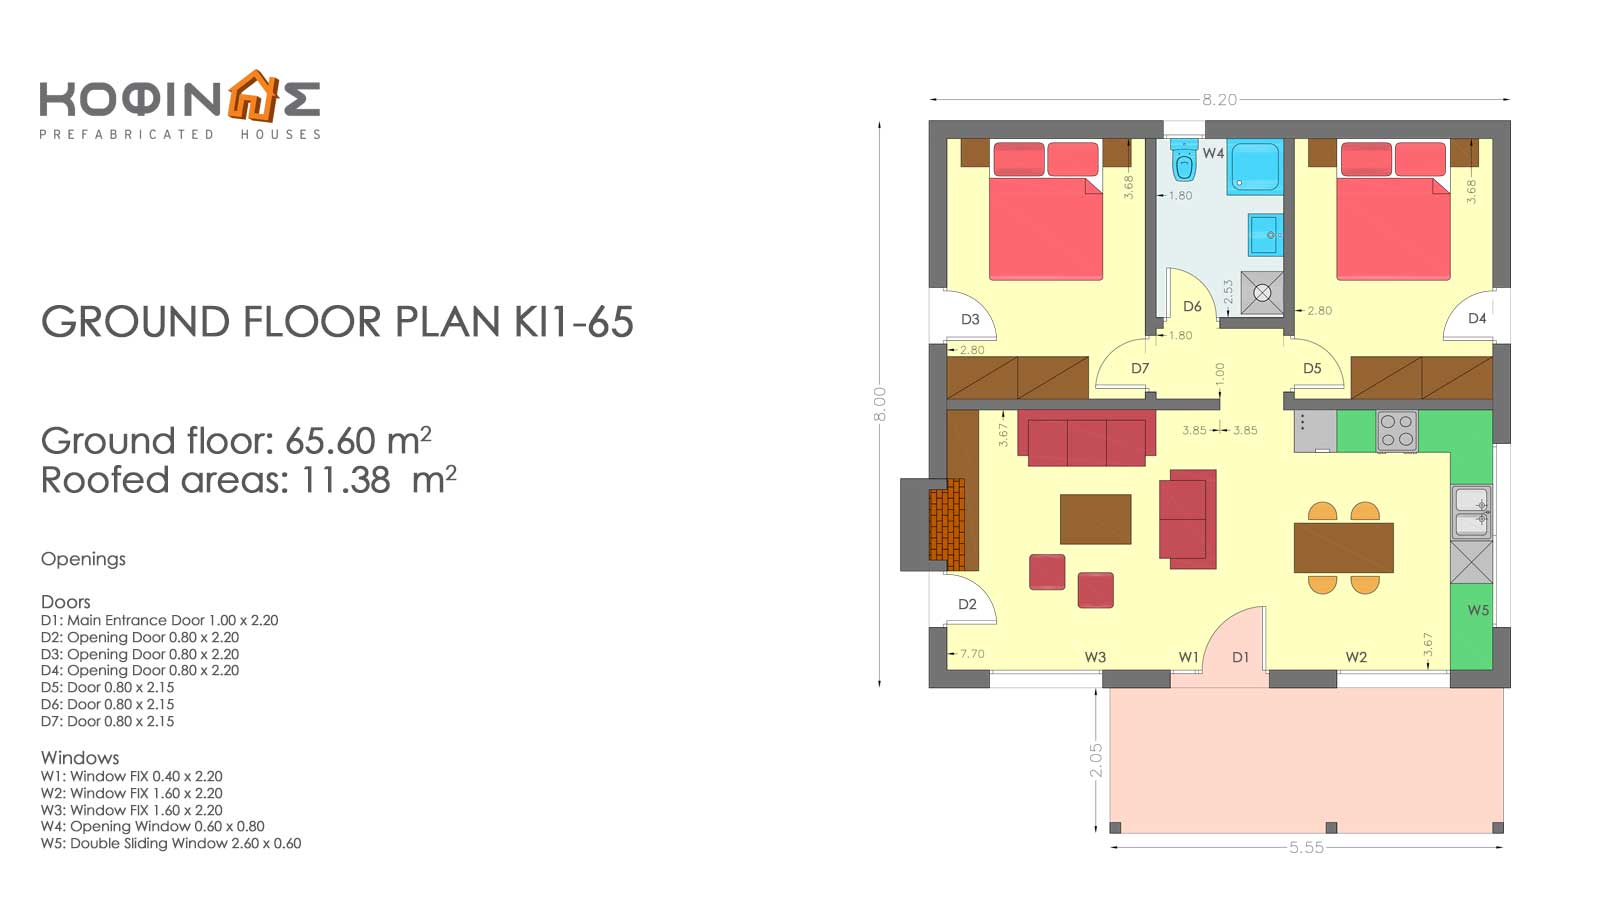 Single story house, KI1-65 (65,60 m²) – Price: 51.200€